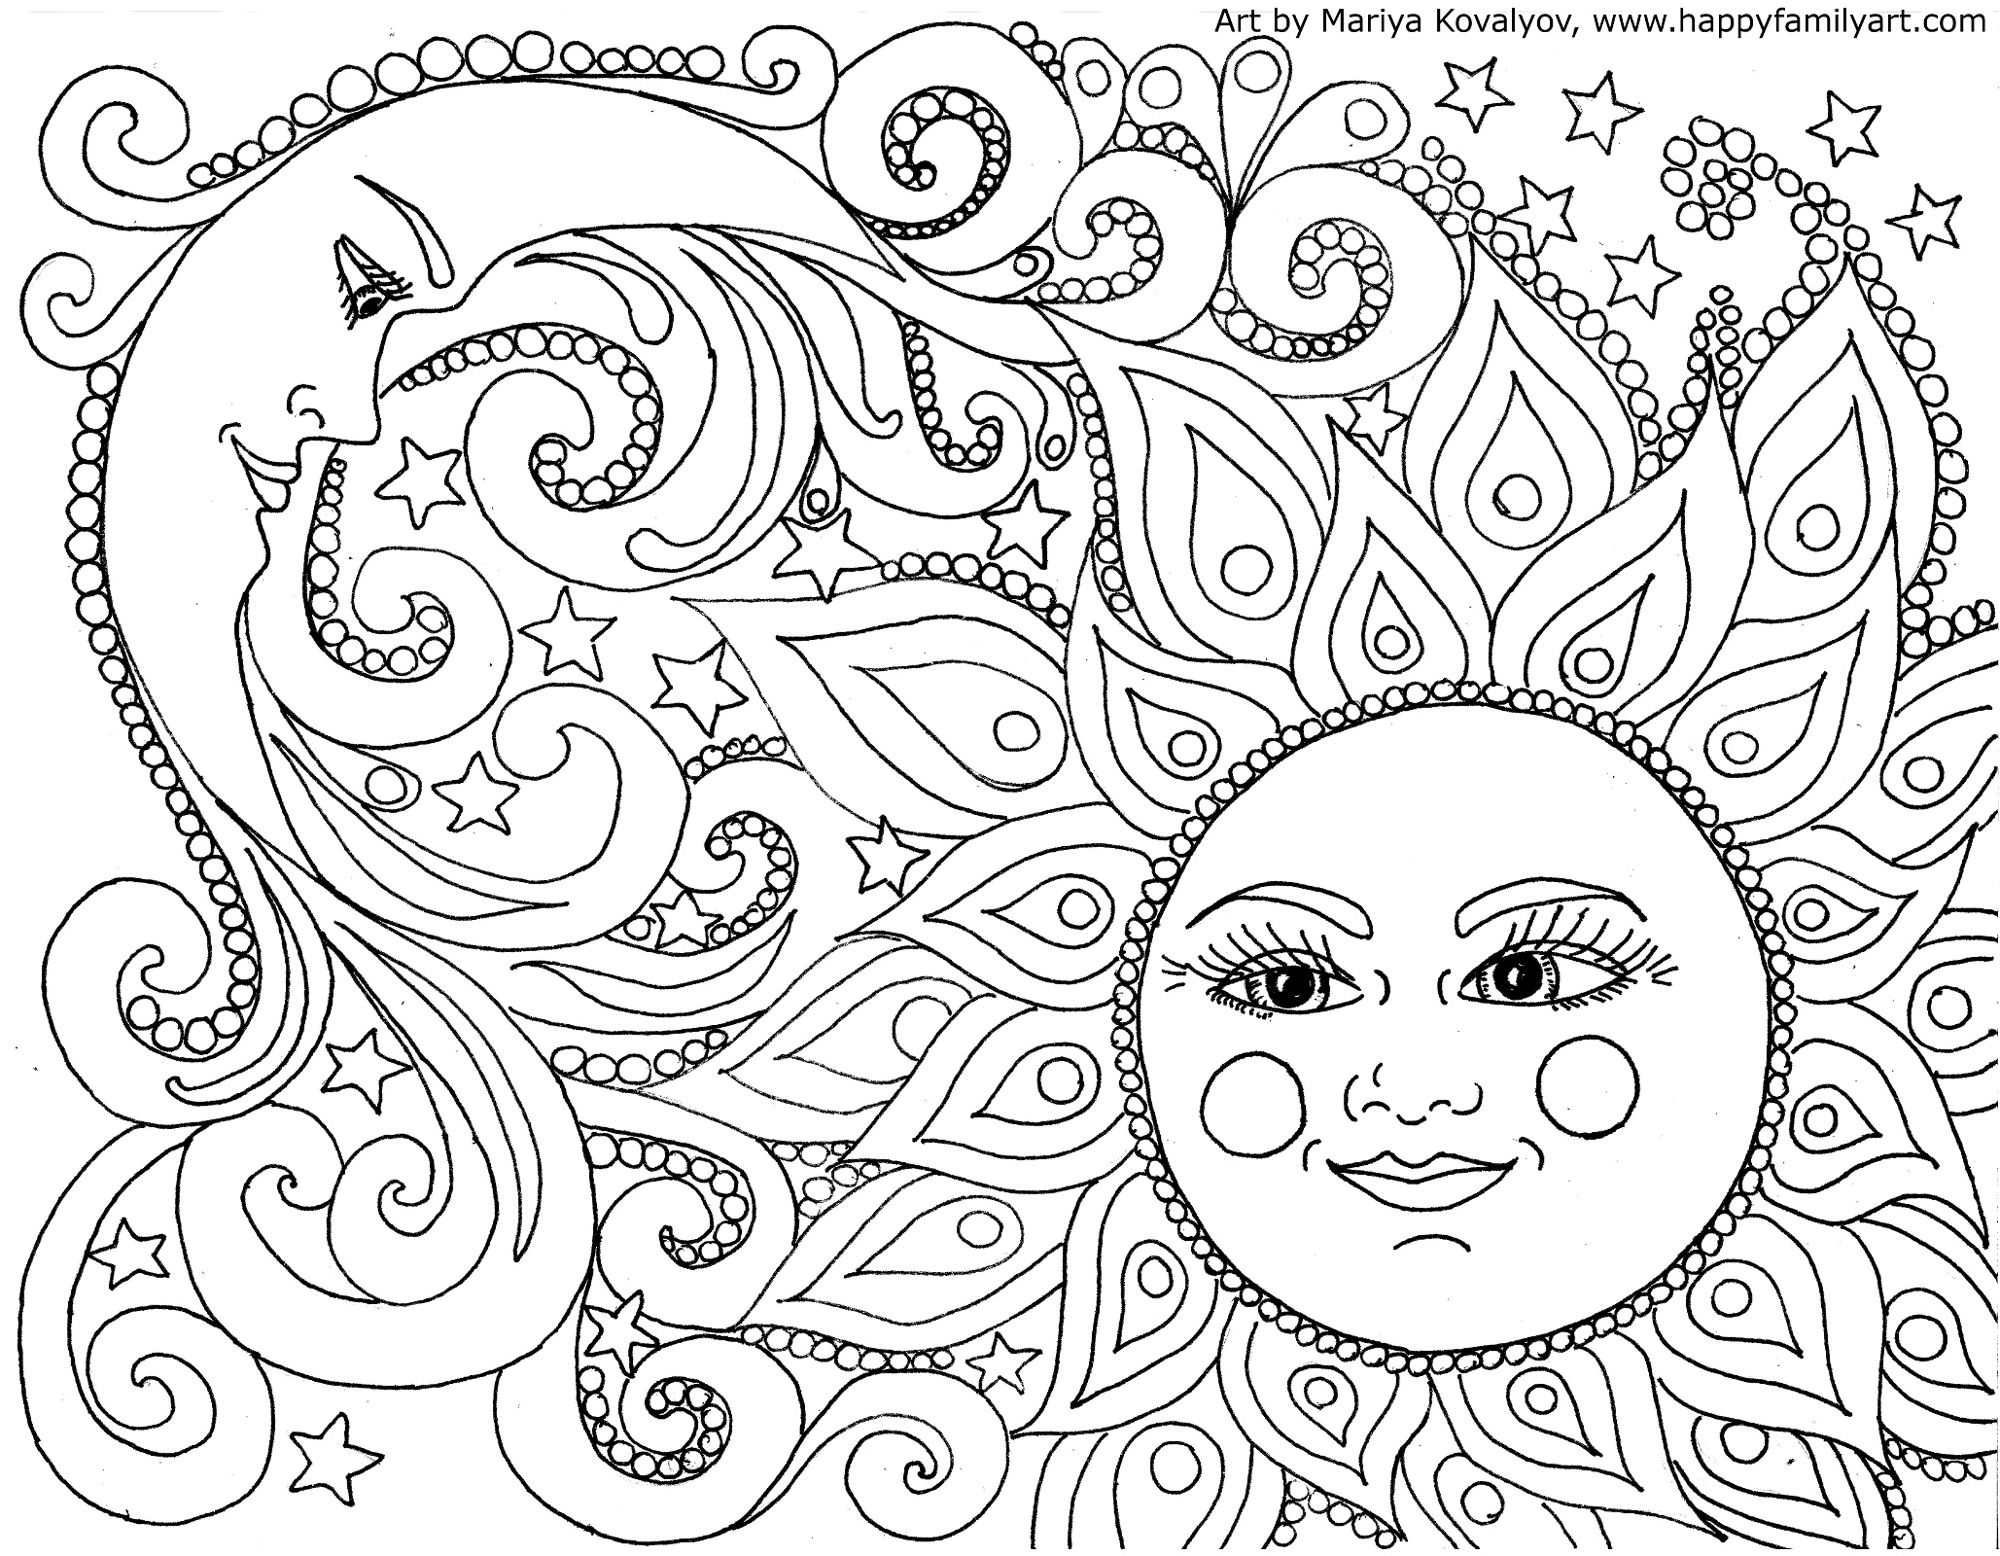 25 best ideas about coloring pages on pinterest free coloring pages adult coloring pages and colouring sheets for adults